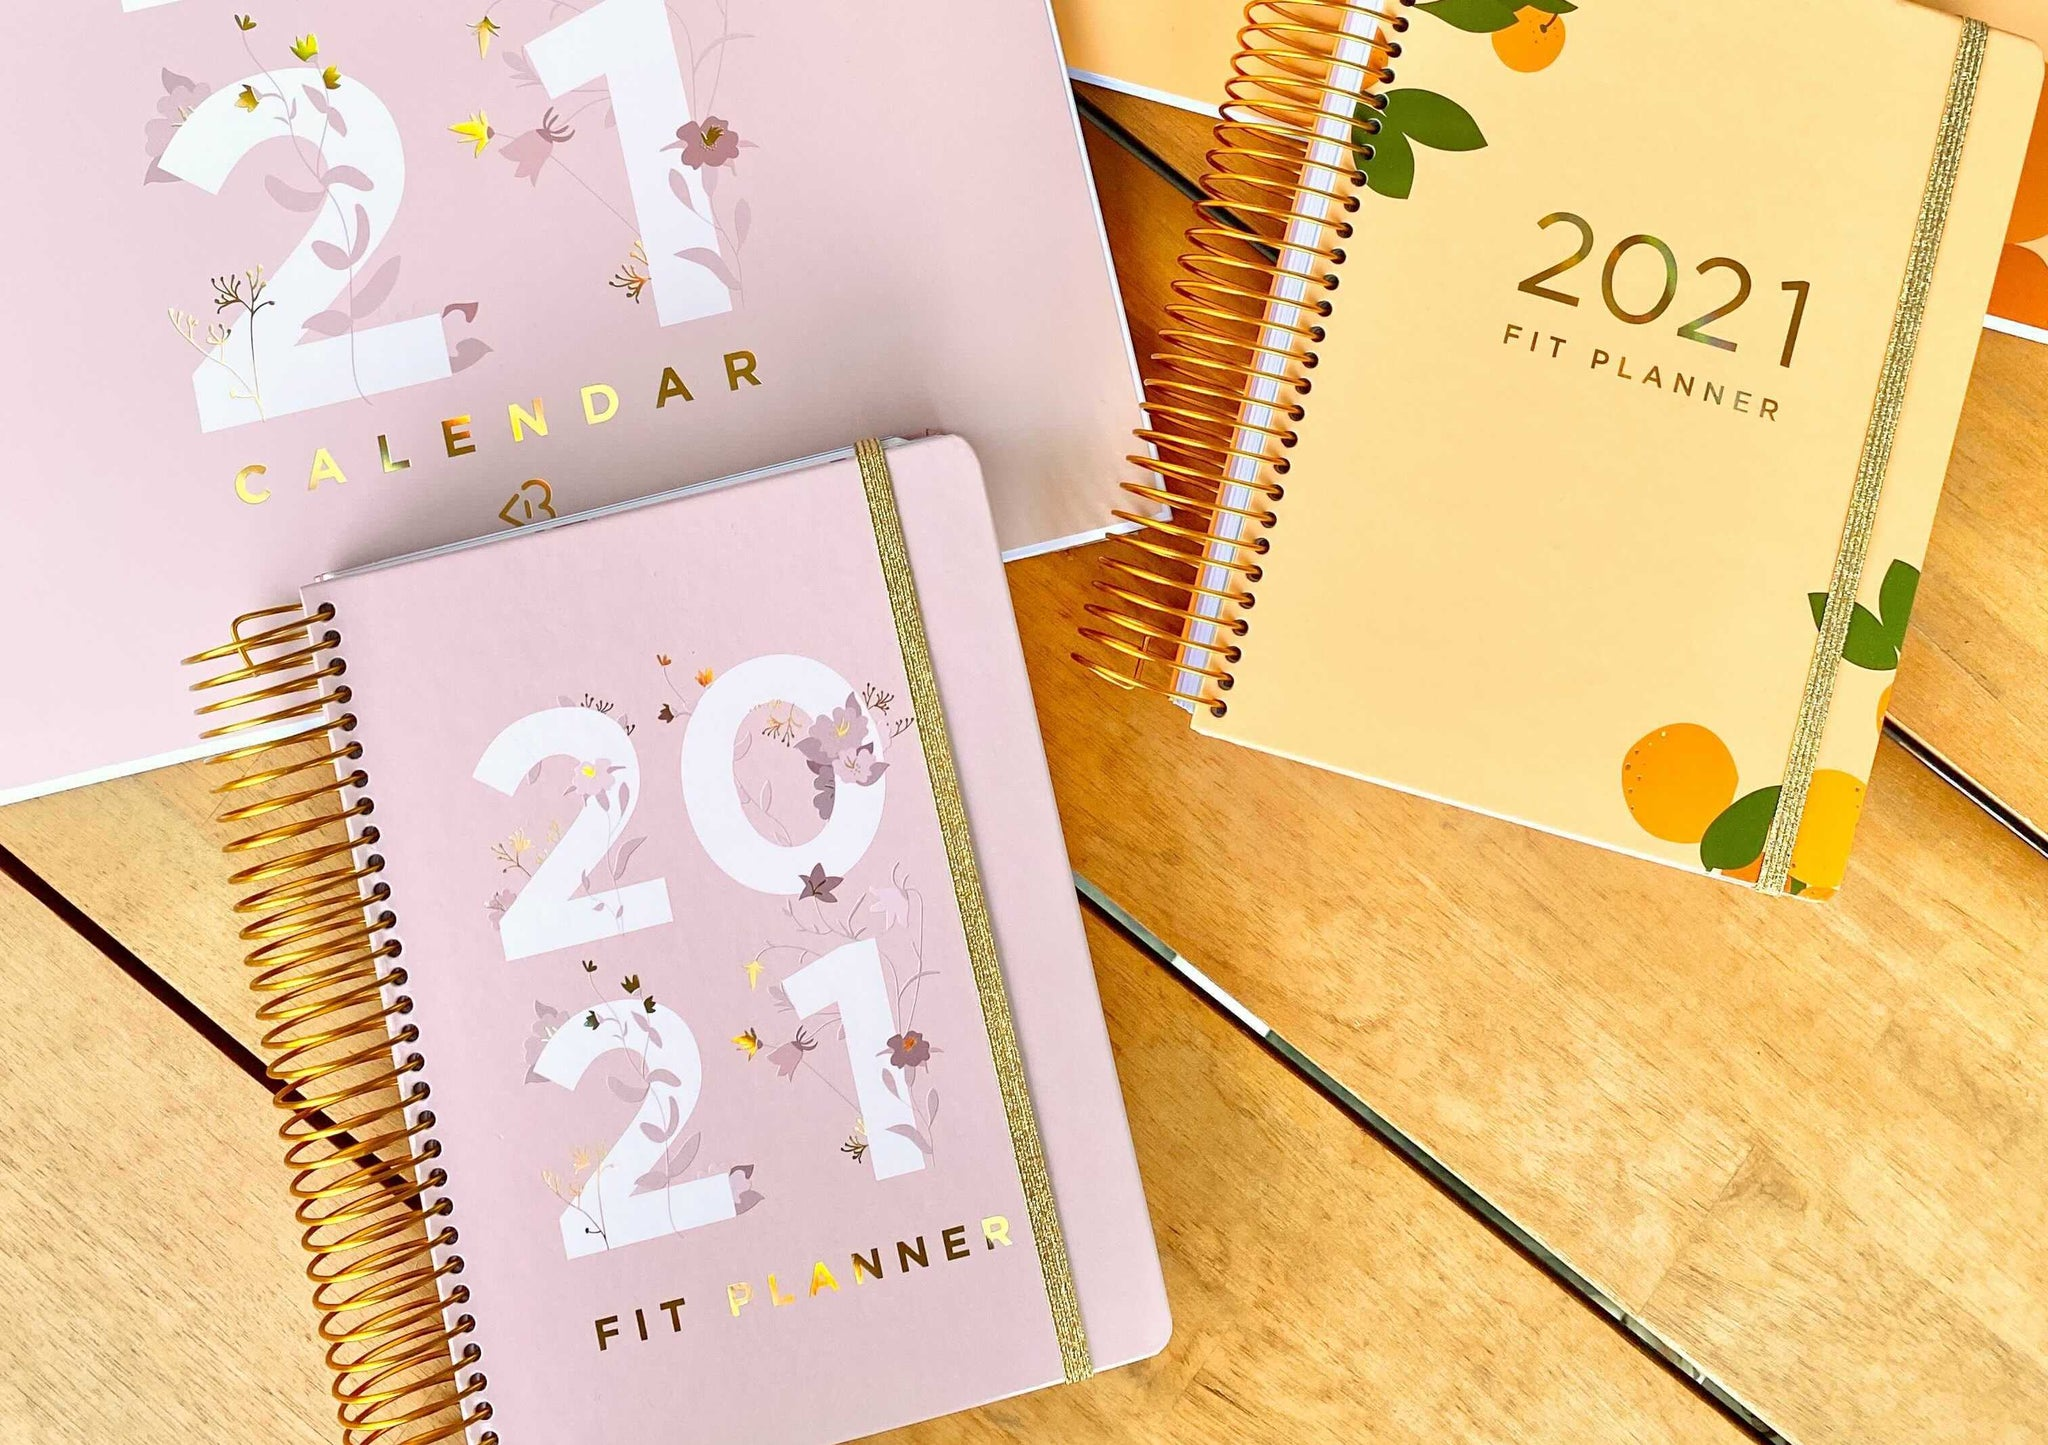 Crush Your Goals in 2021 With the New Fit Planner